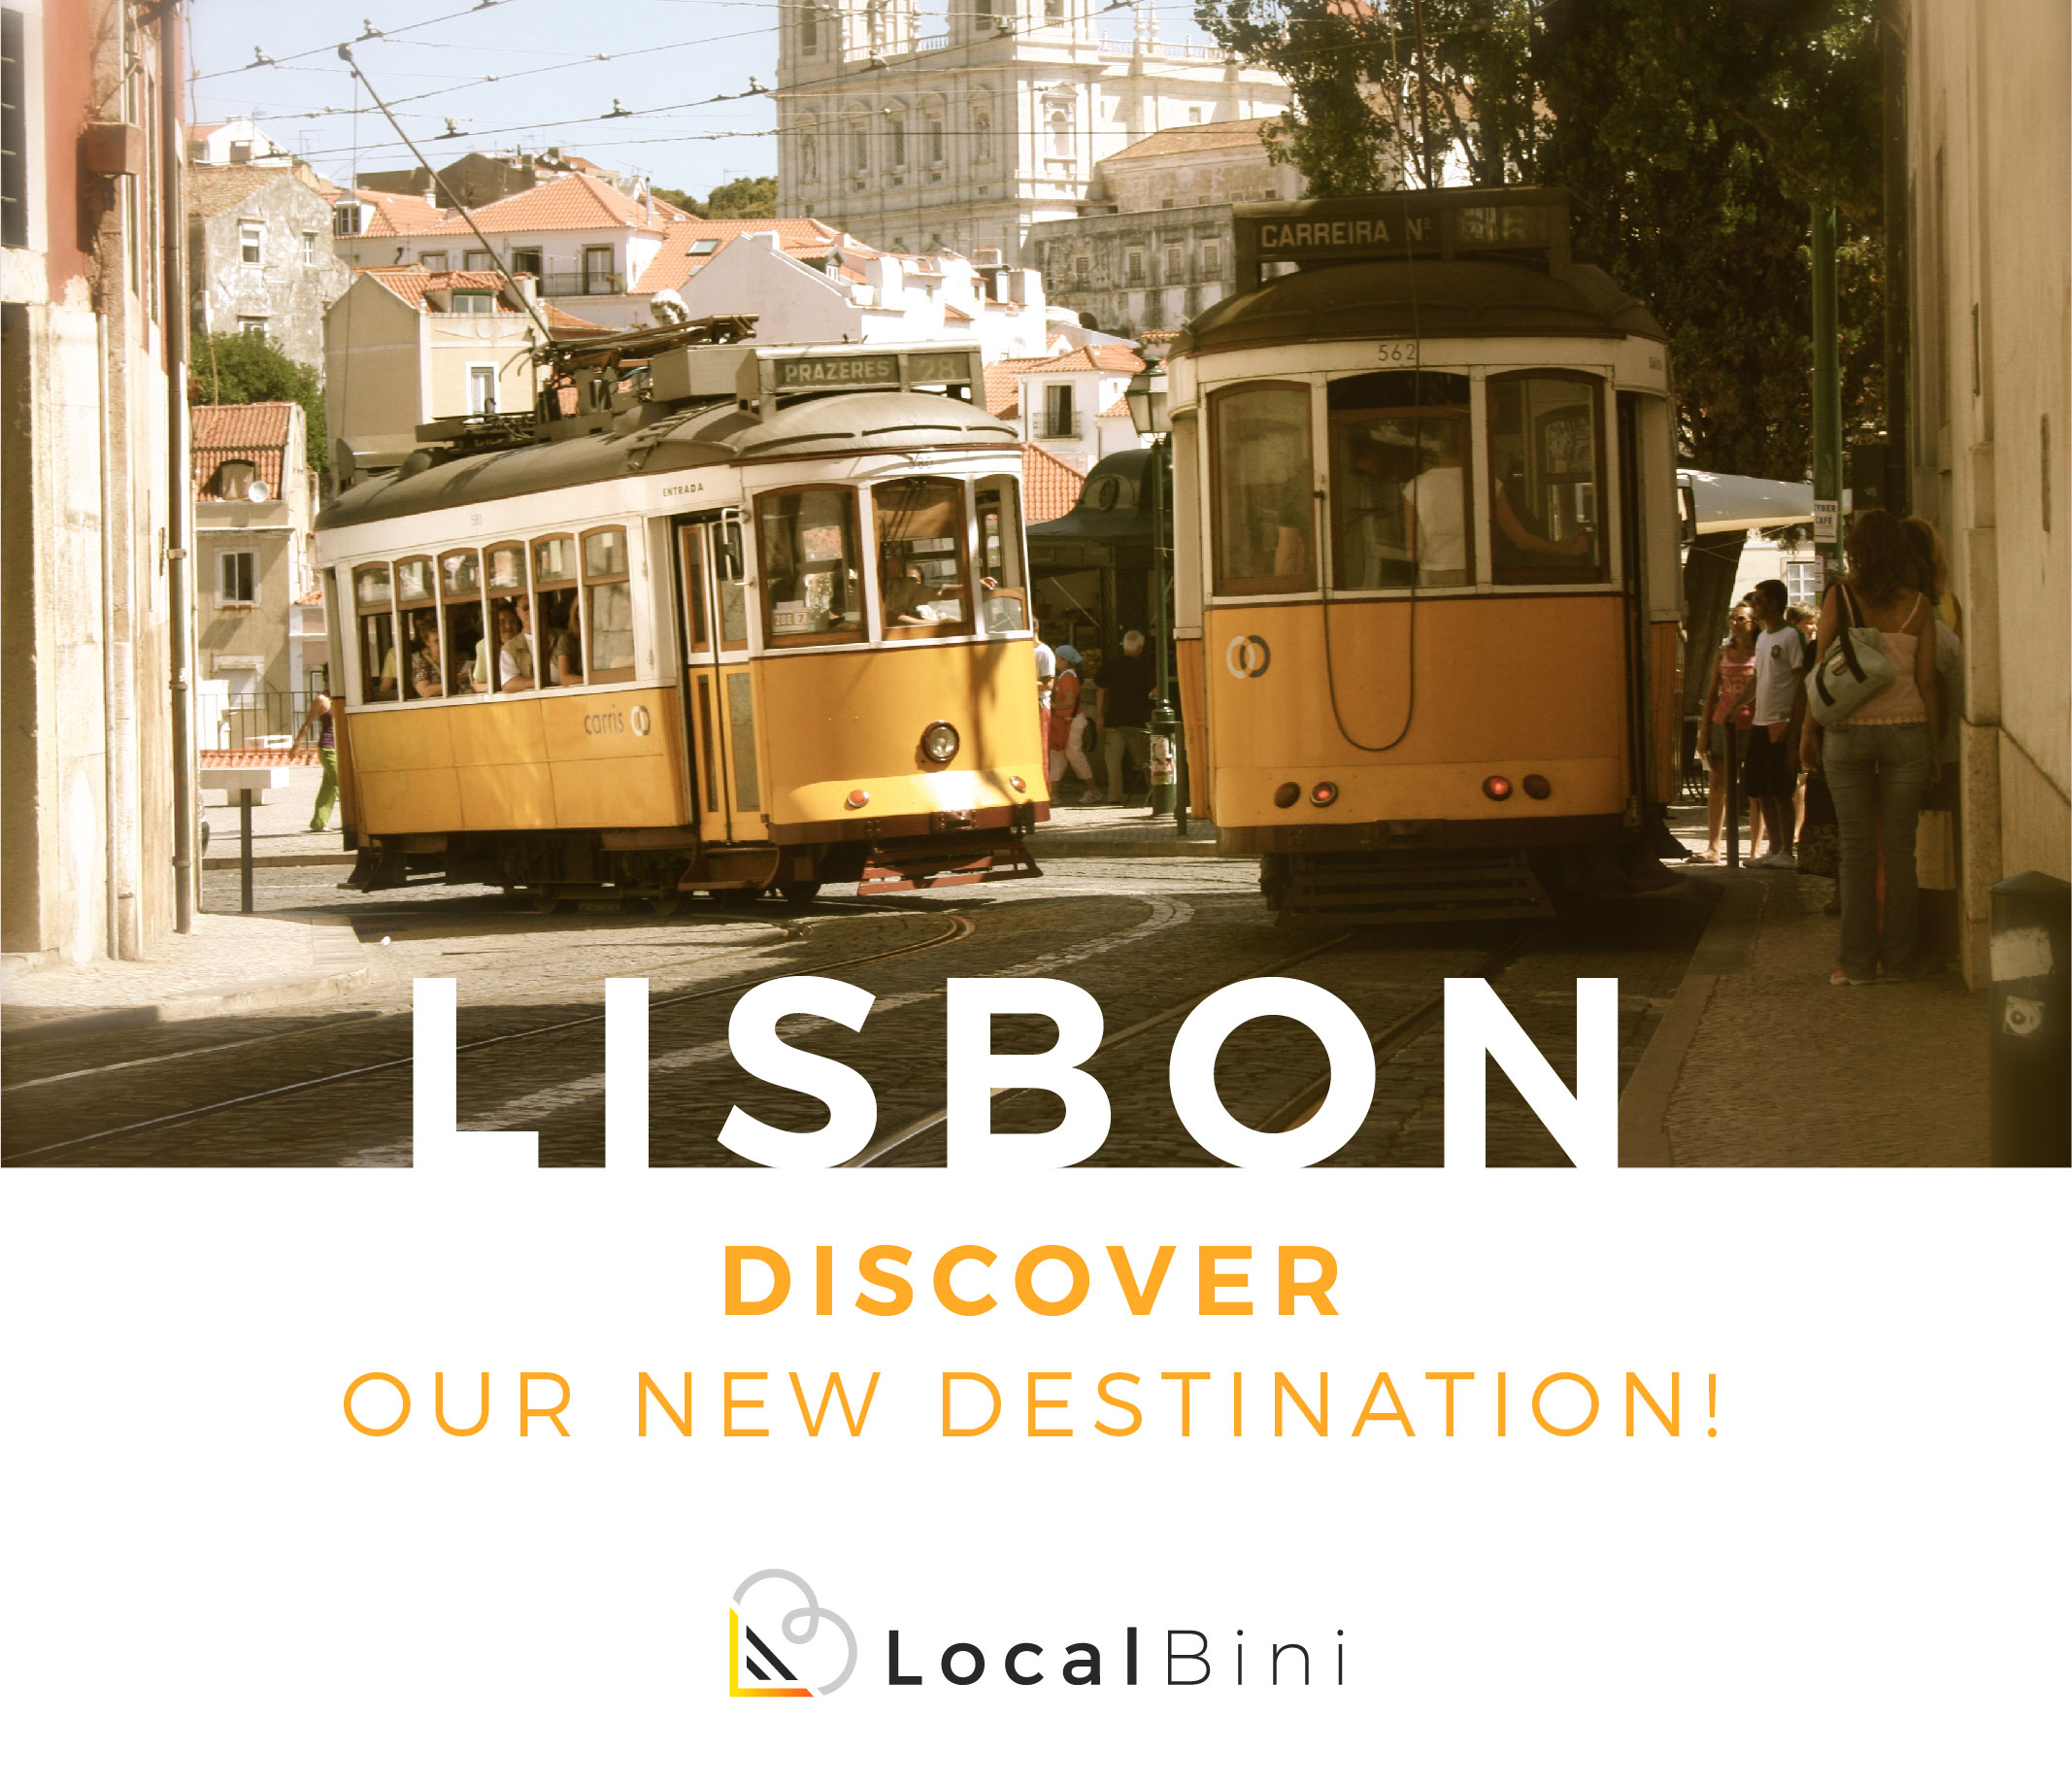 Localbini Launch Lisbon Things to Do Travel Unique Experiences Local Tours